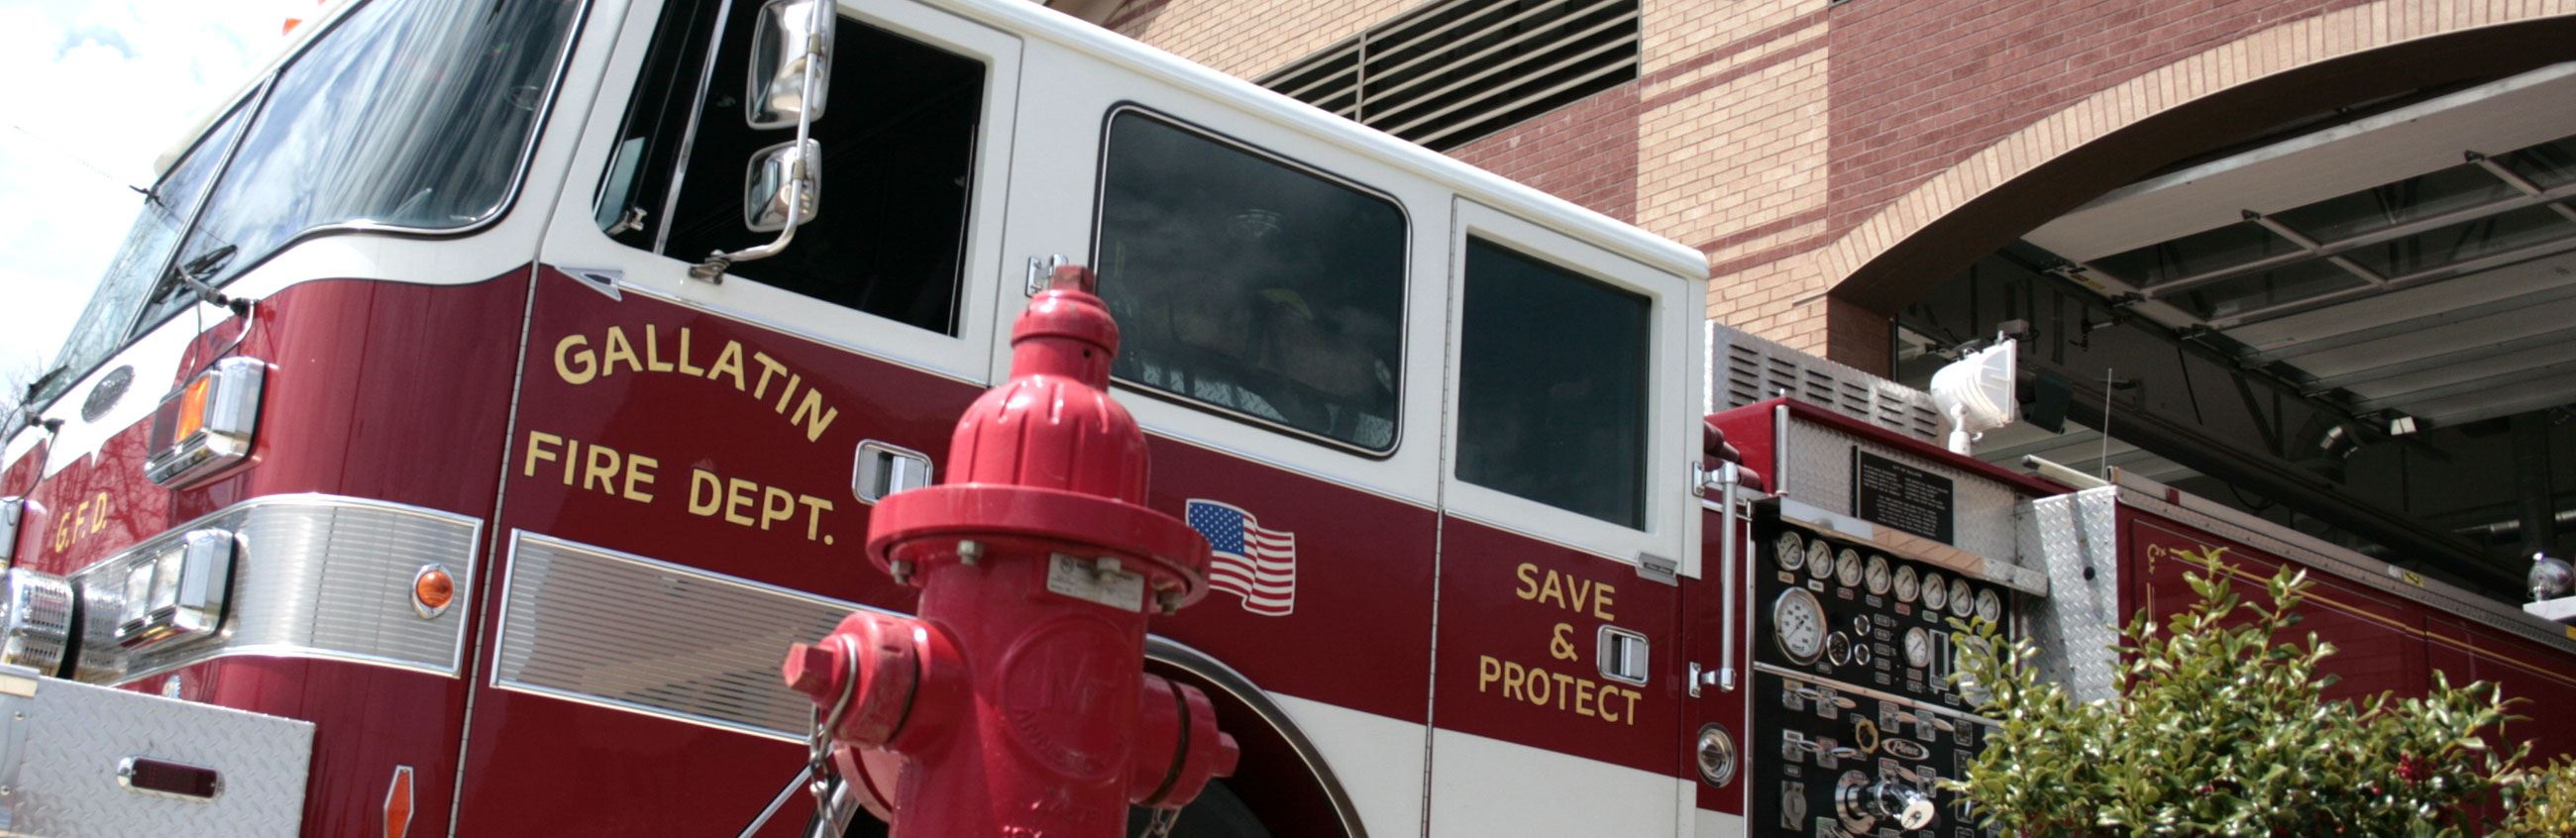 Fire Engine at Station #4